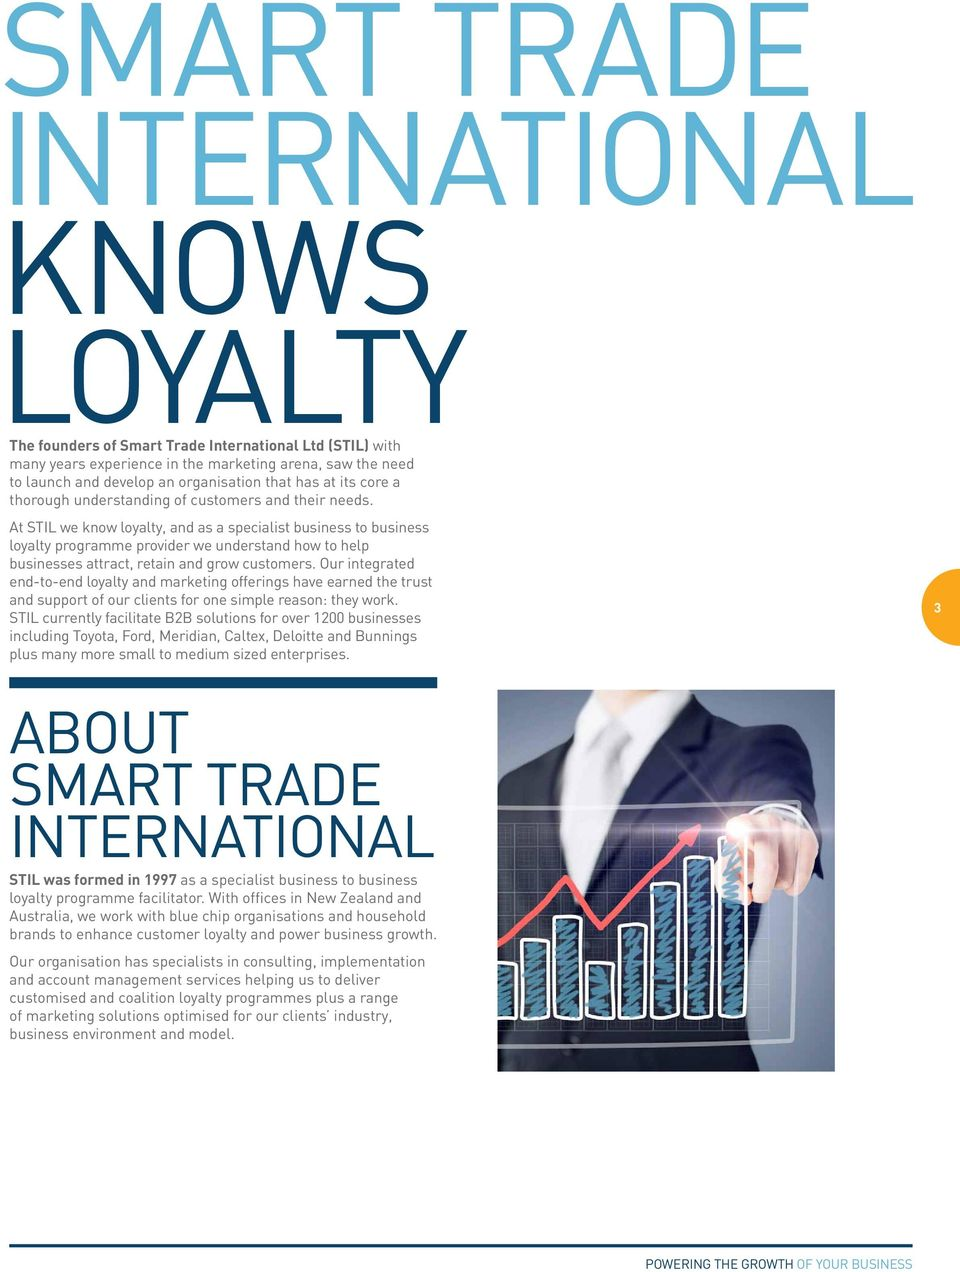 At STIL we know loyalty, and as a specialist business to business loyalty programme provider we understand how to help businesses attract, retain and grow customers.